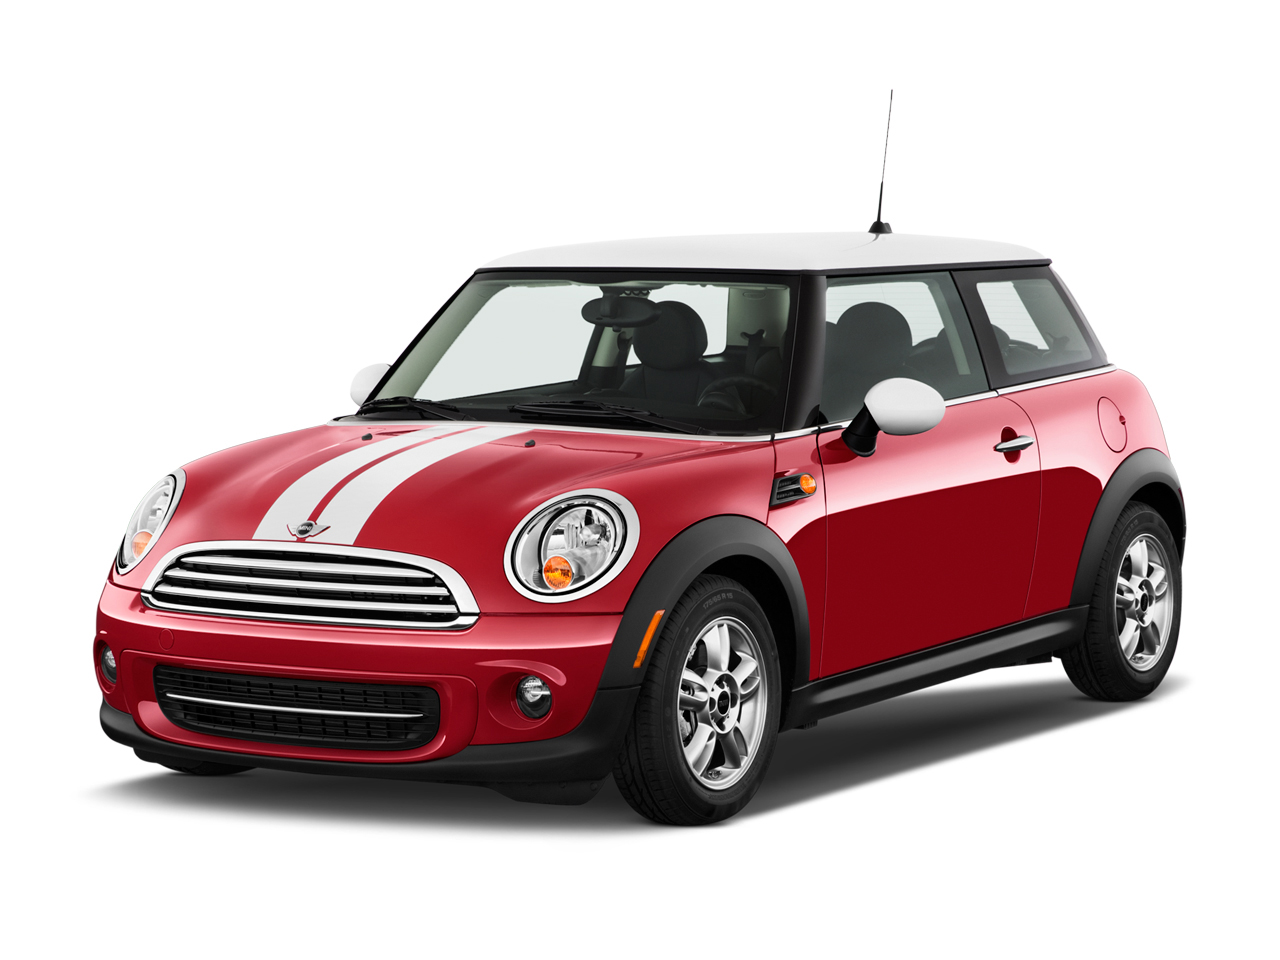 Mini Cooper 2020 price in Pakistan